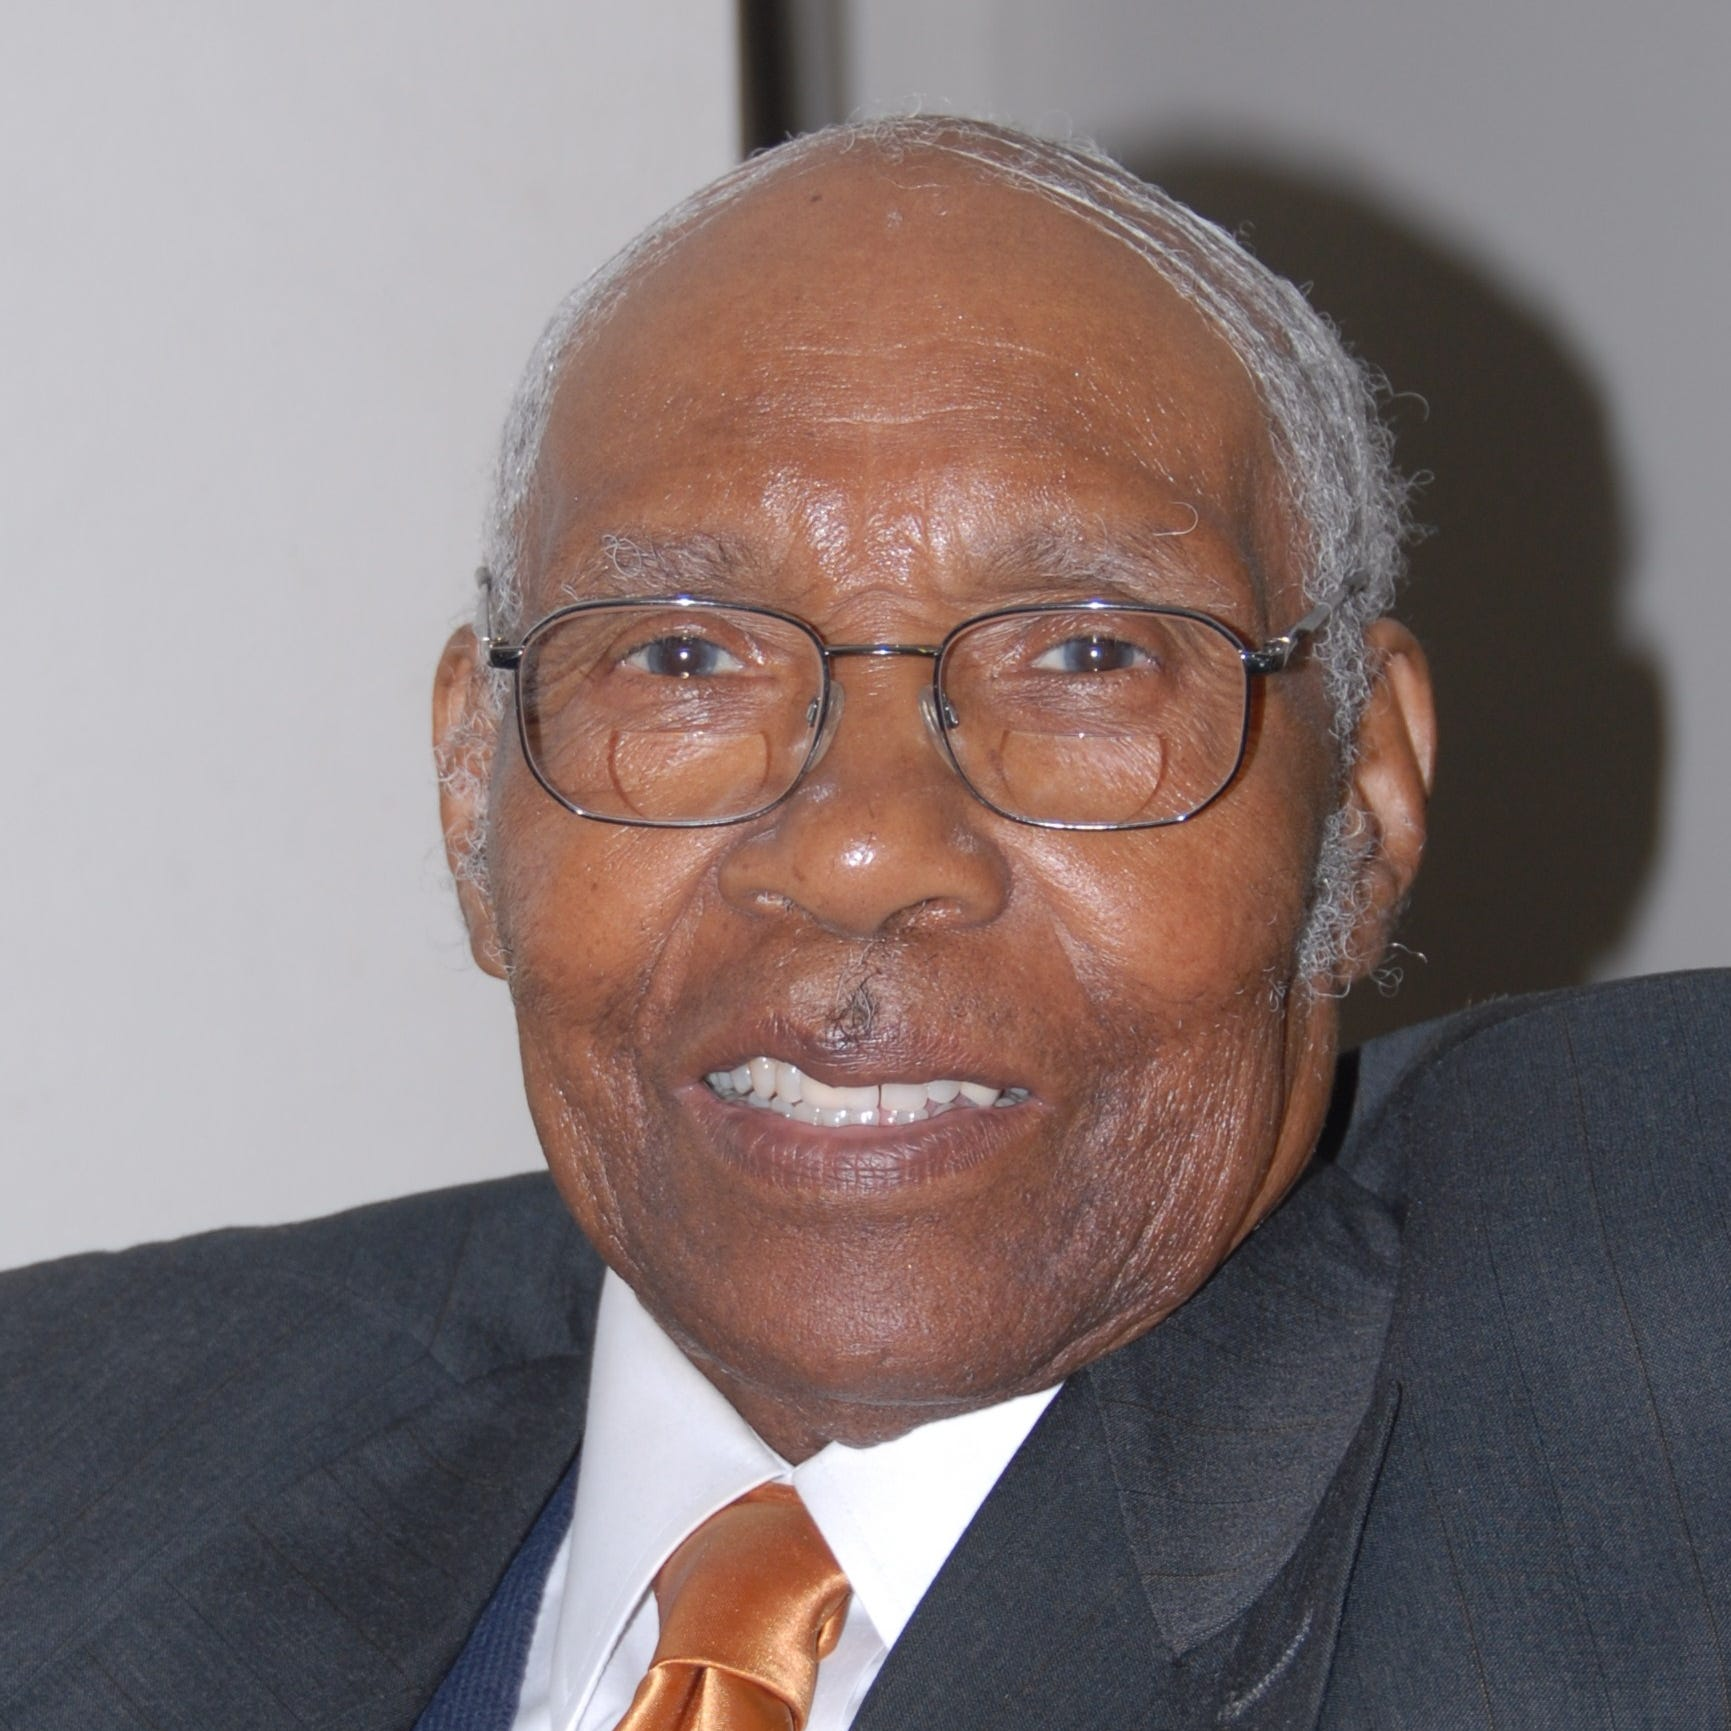 After decades of service, funeral home founder M.J. Edwards Sr. dies at age 92